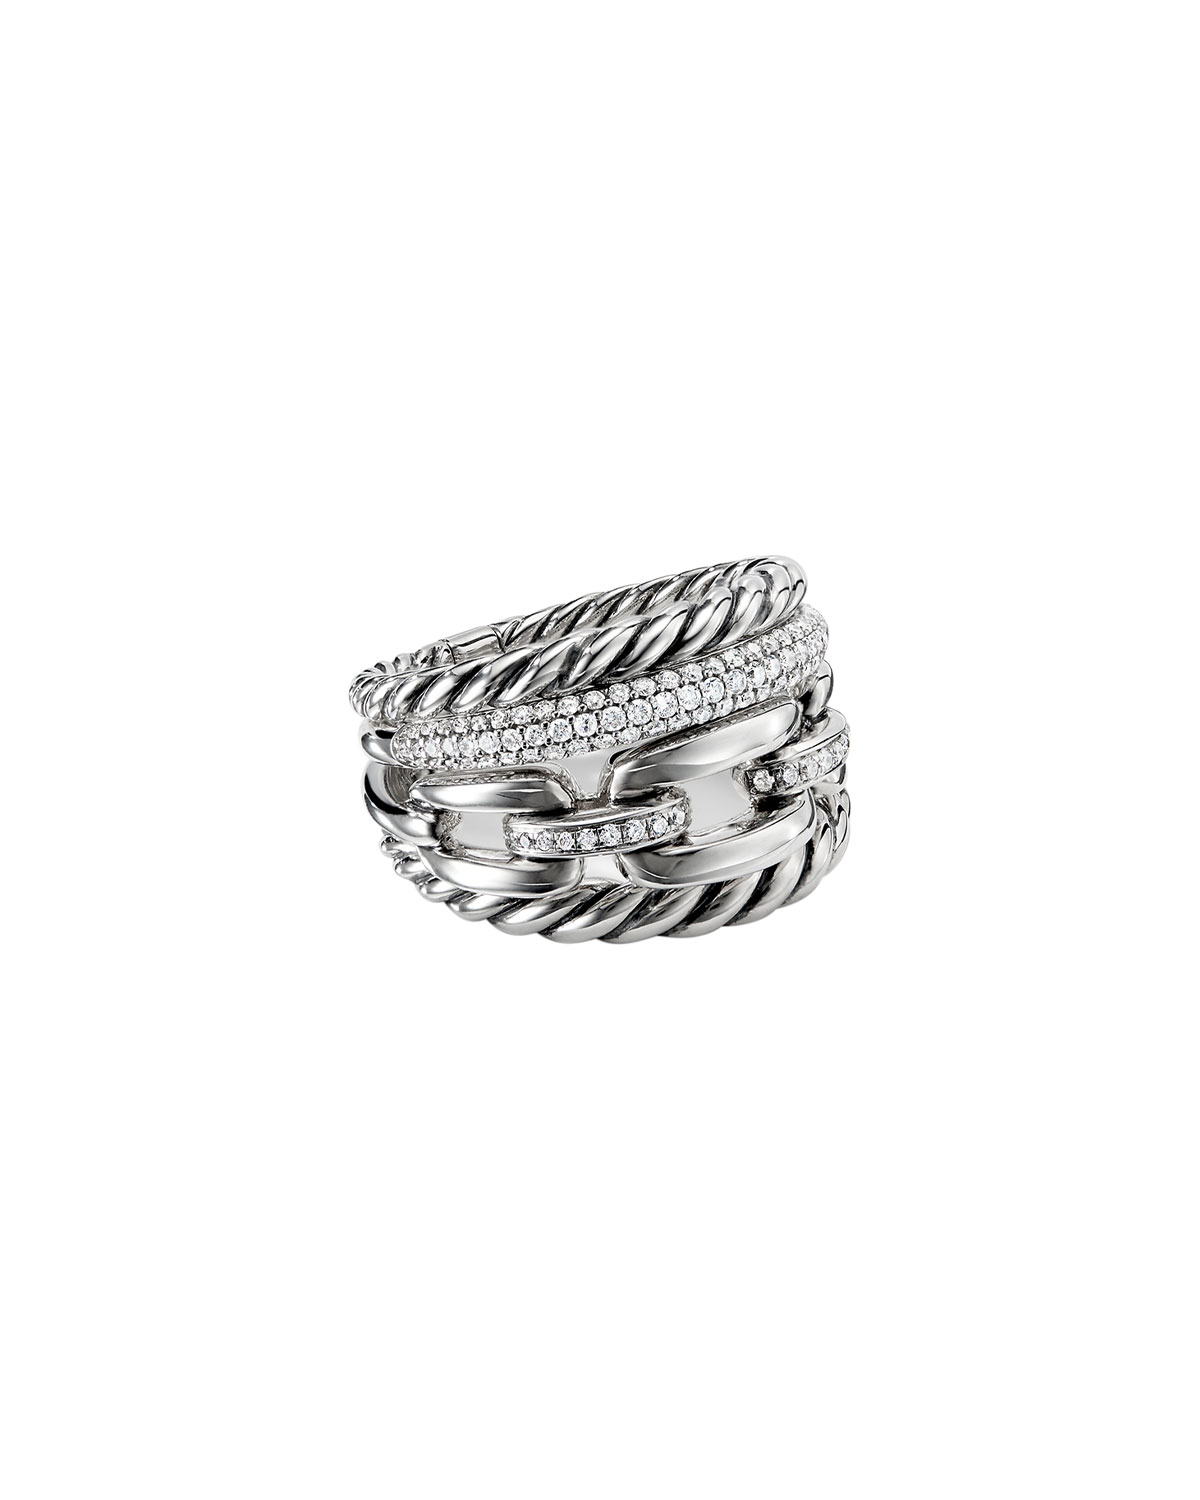 Wellesley Sterling Silver Four-Row Ring with Diamonds